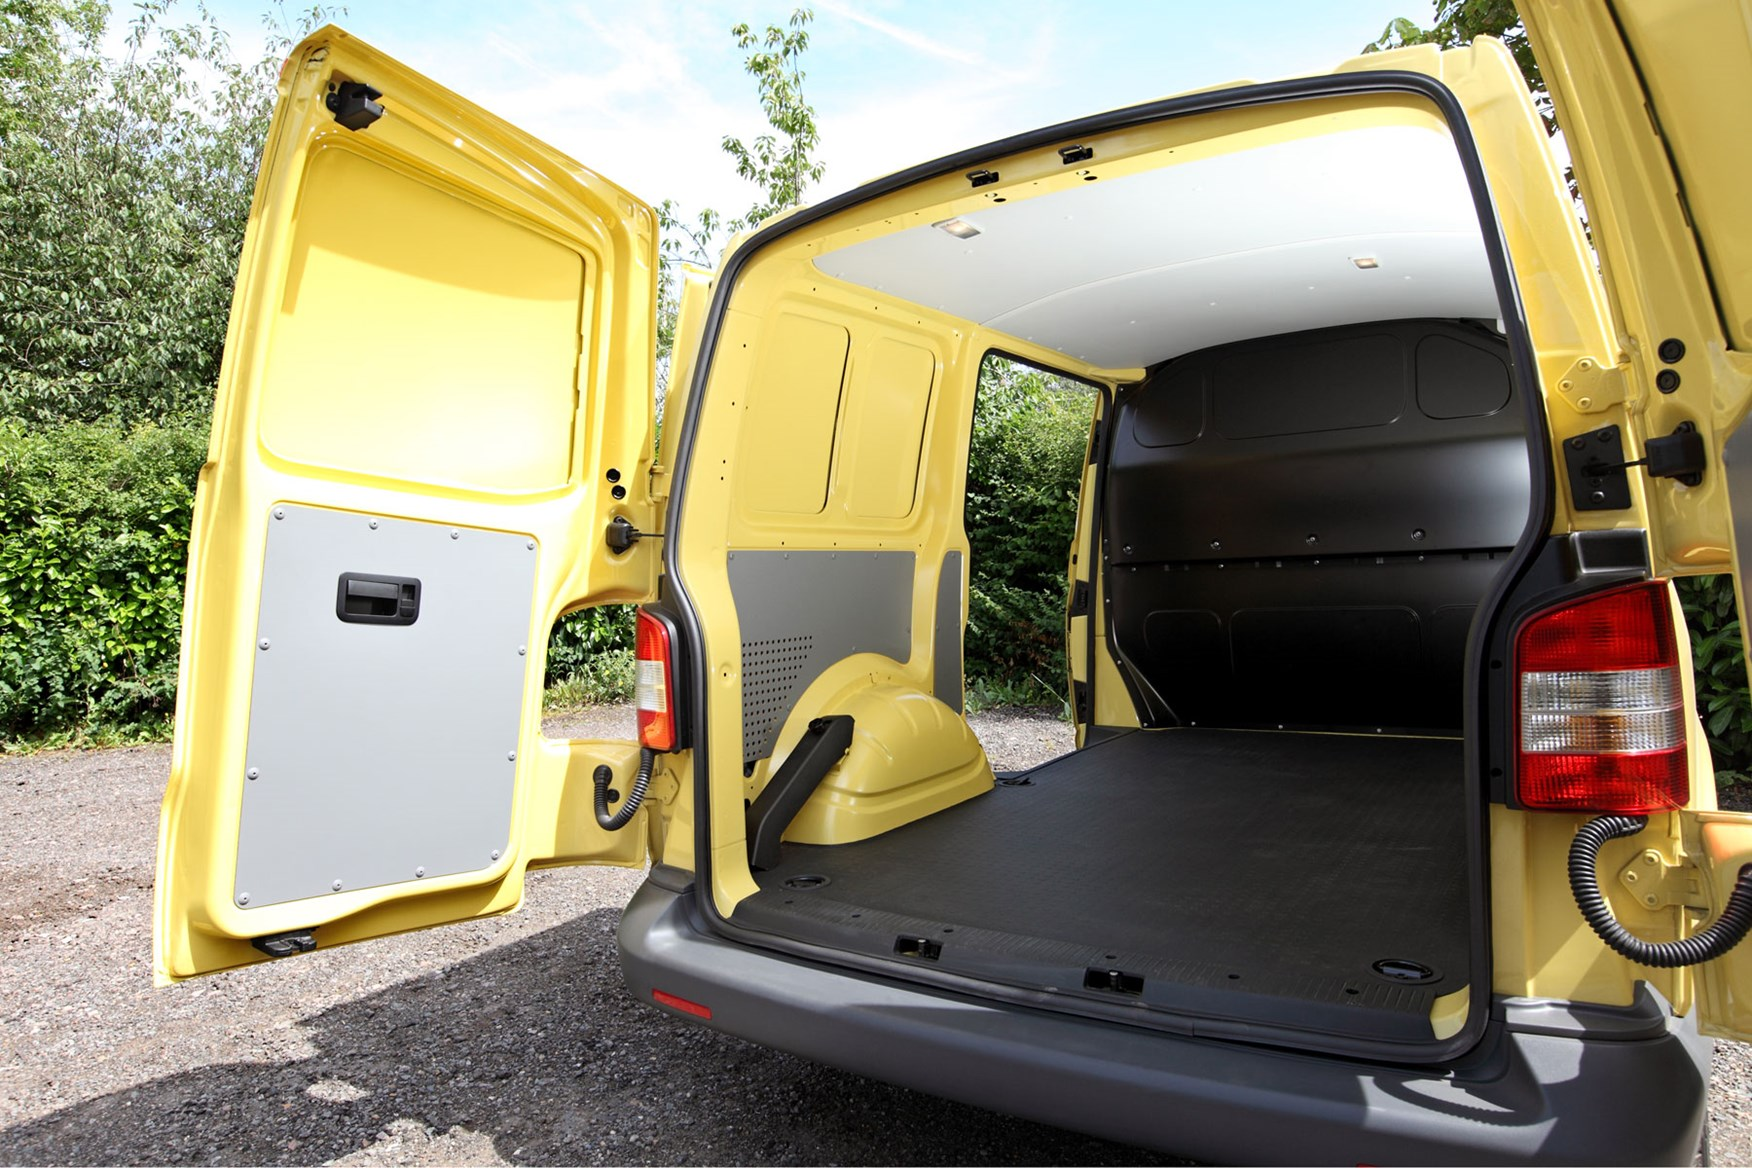 VW Transporter T5 (2010-2015) payload and load area